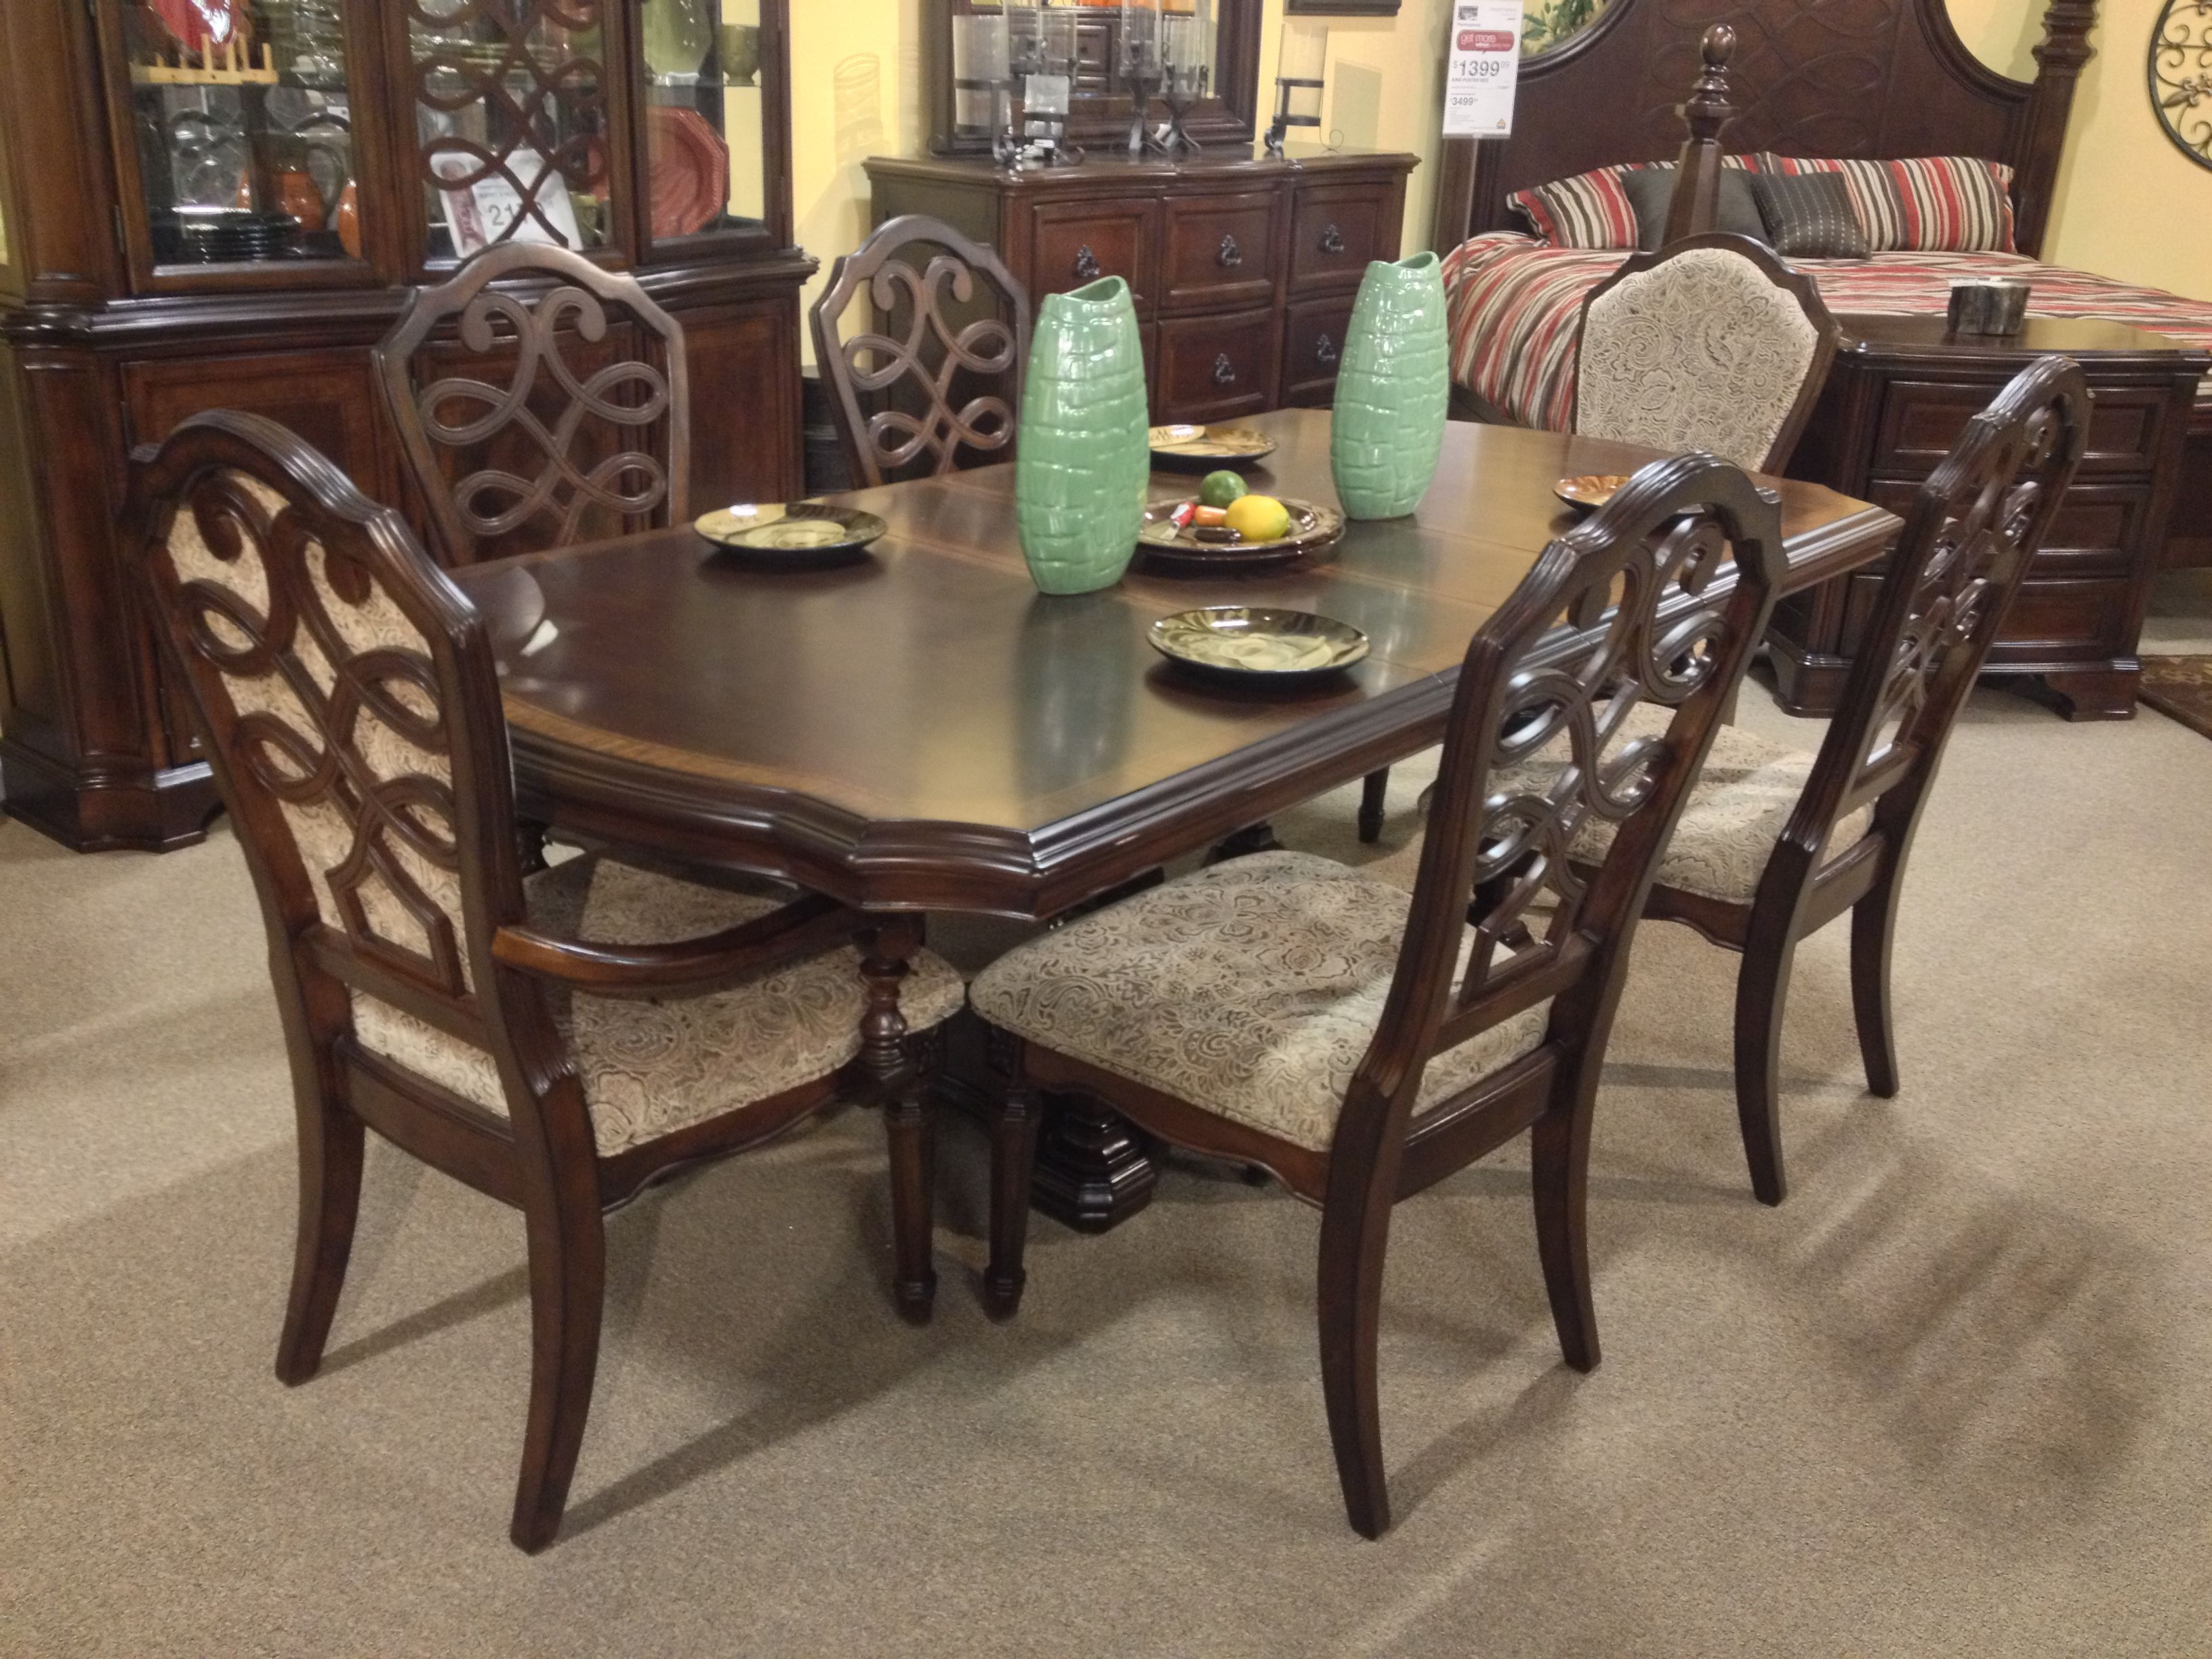 Ashley Dining Room Chairs Flemingsburg 7 Piece Dining Room Set Ashley Furniture In